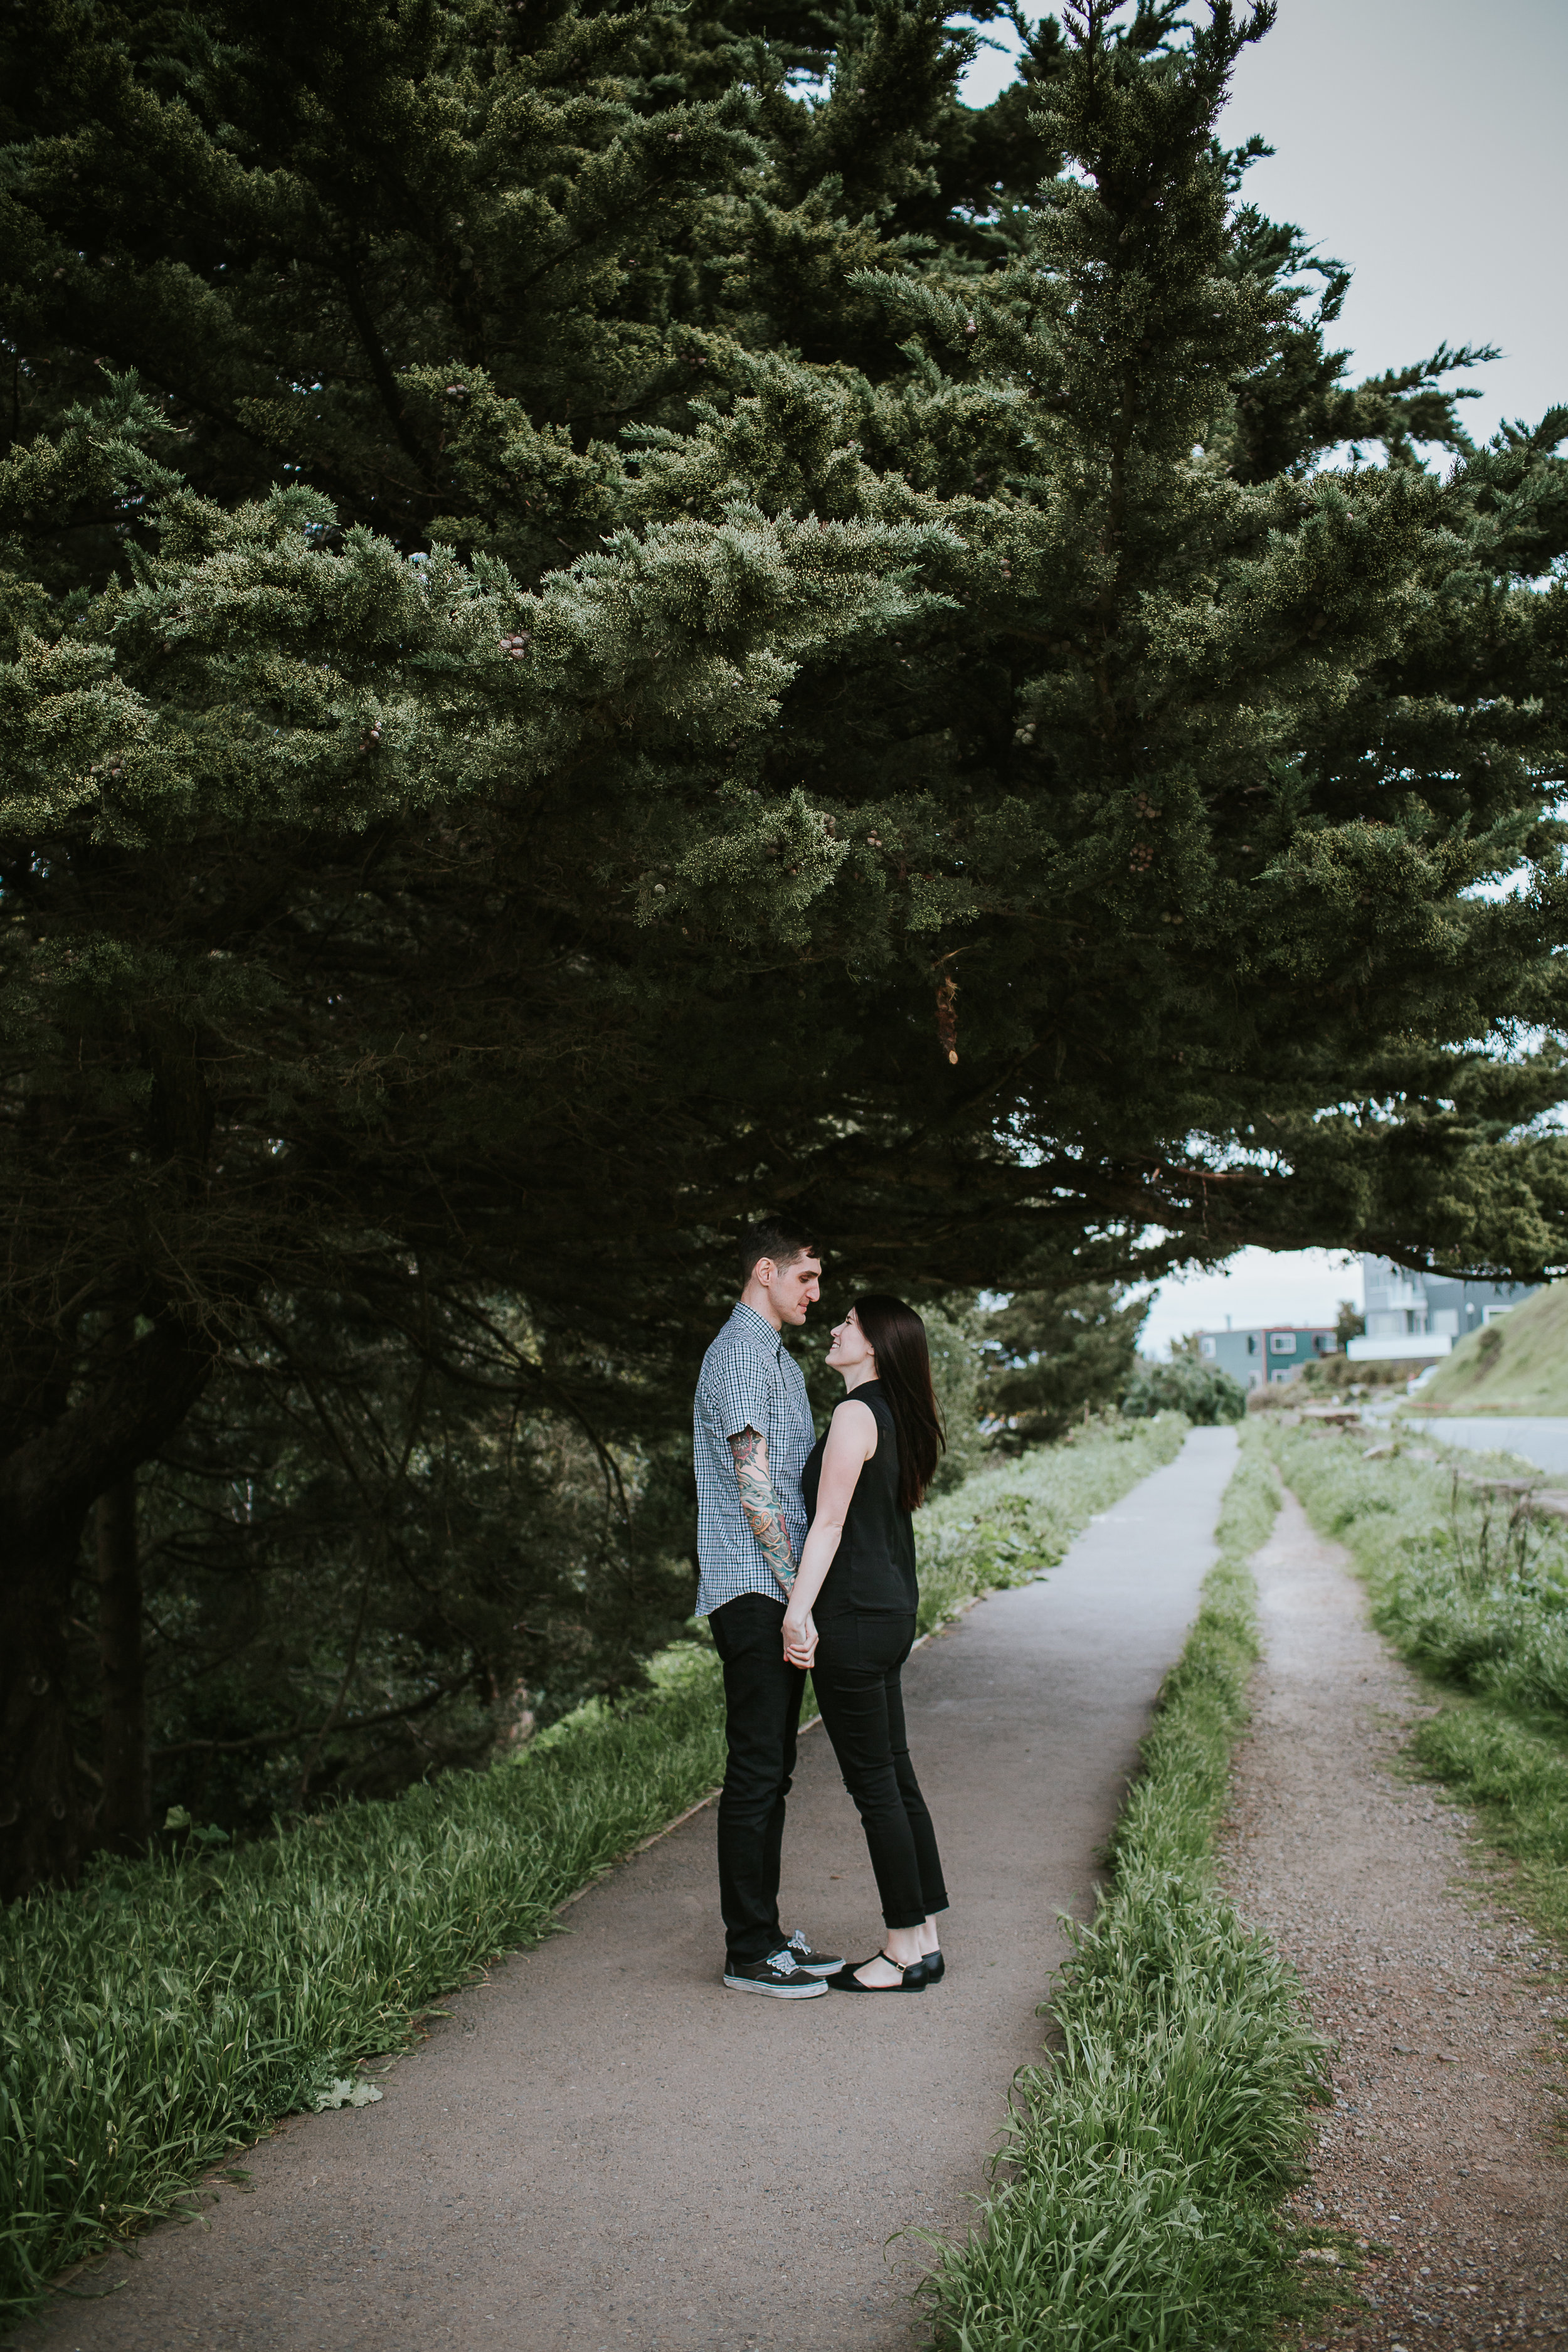 Nikki.Steven.san francisco. engagement. bernal heights dolores mission district-68.jpg